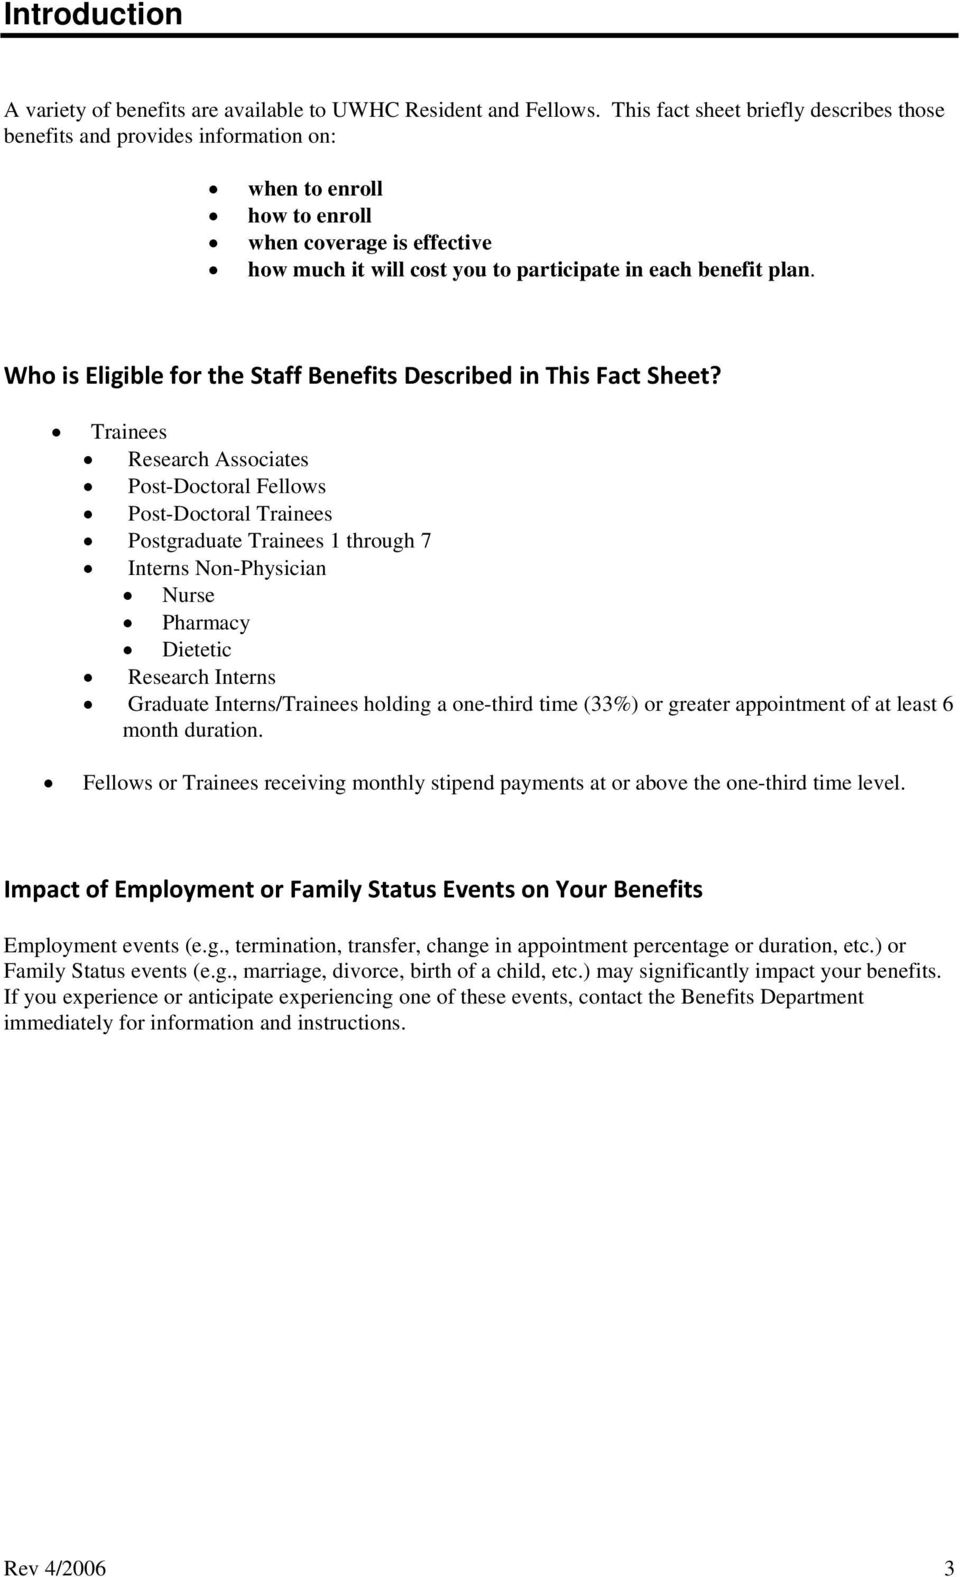 Who is Eligible for the Staff Benefits Described in This Fact Sheet?